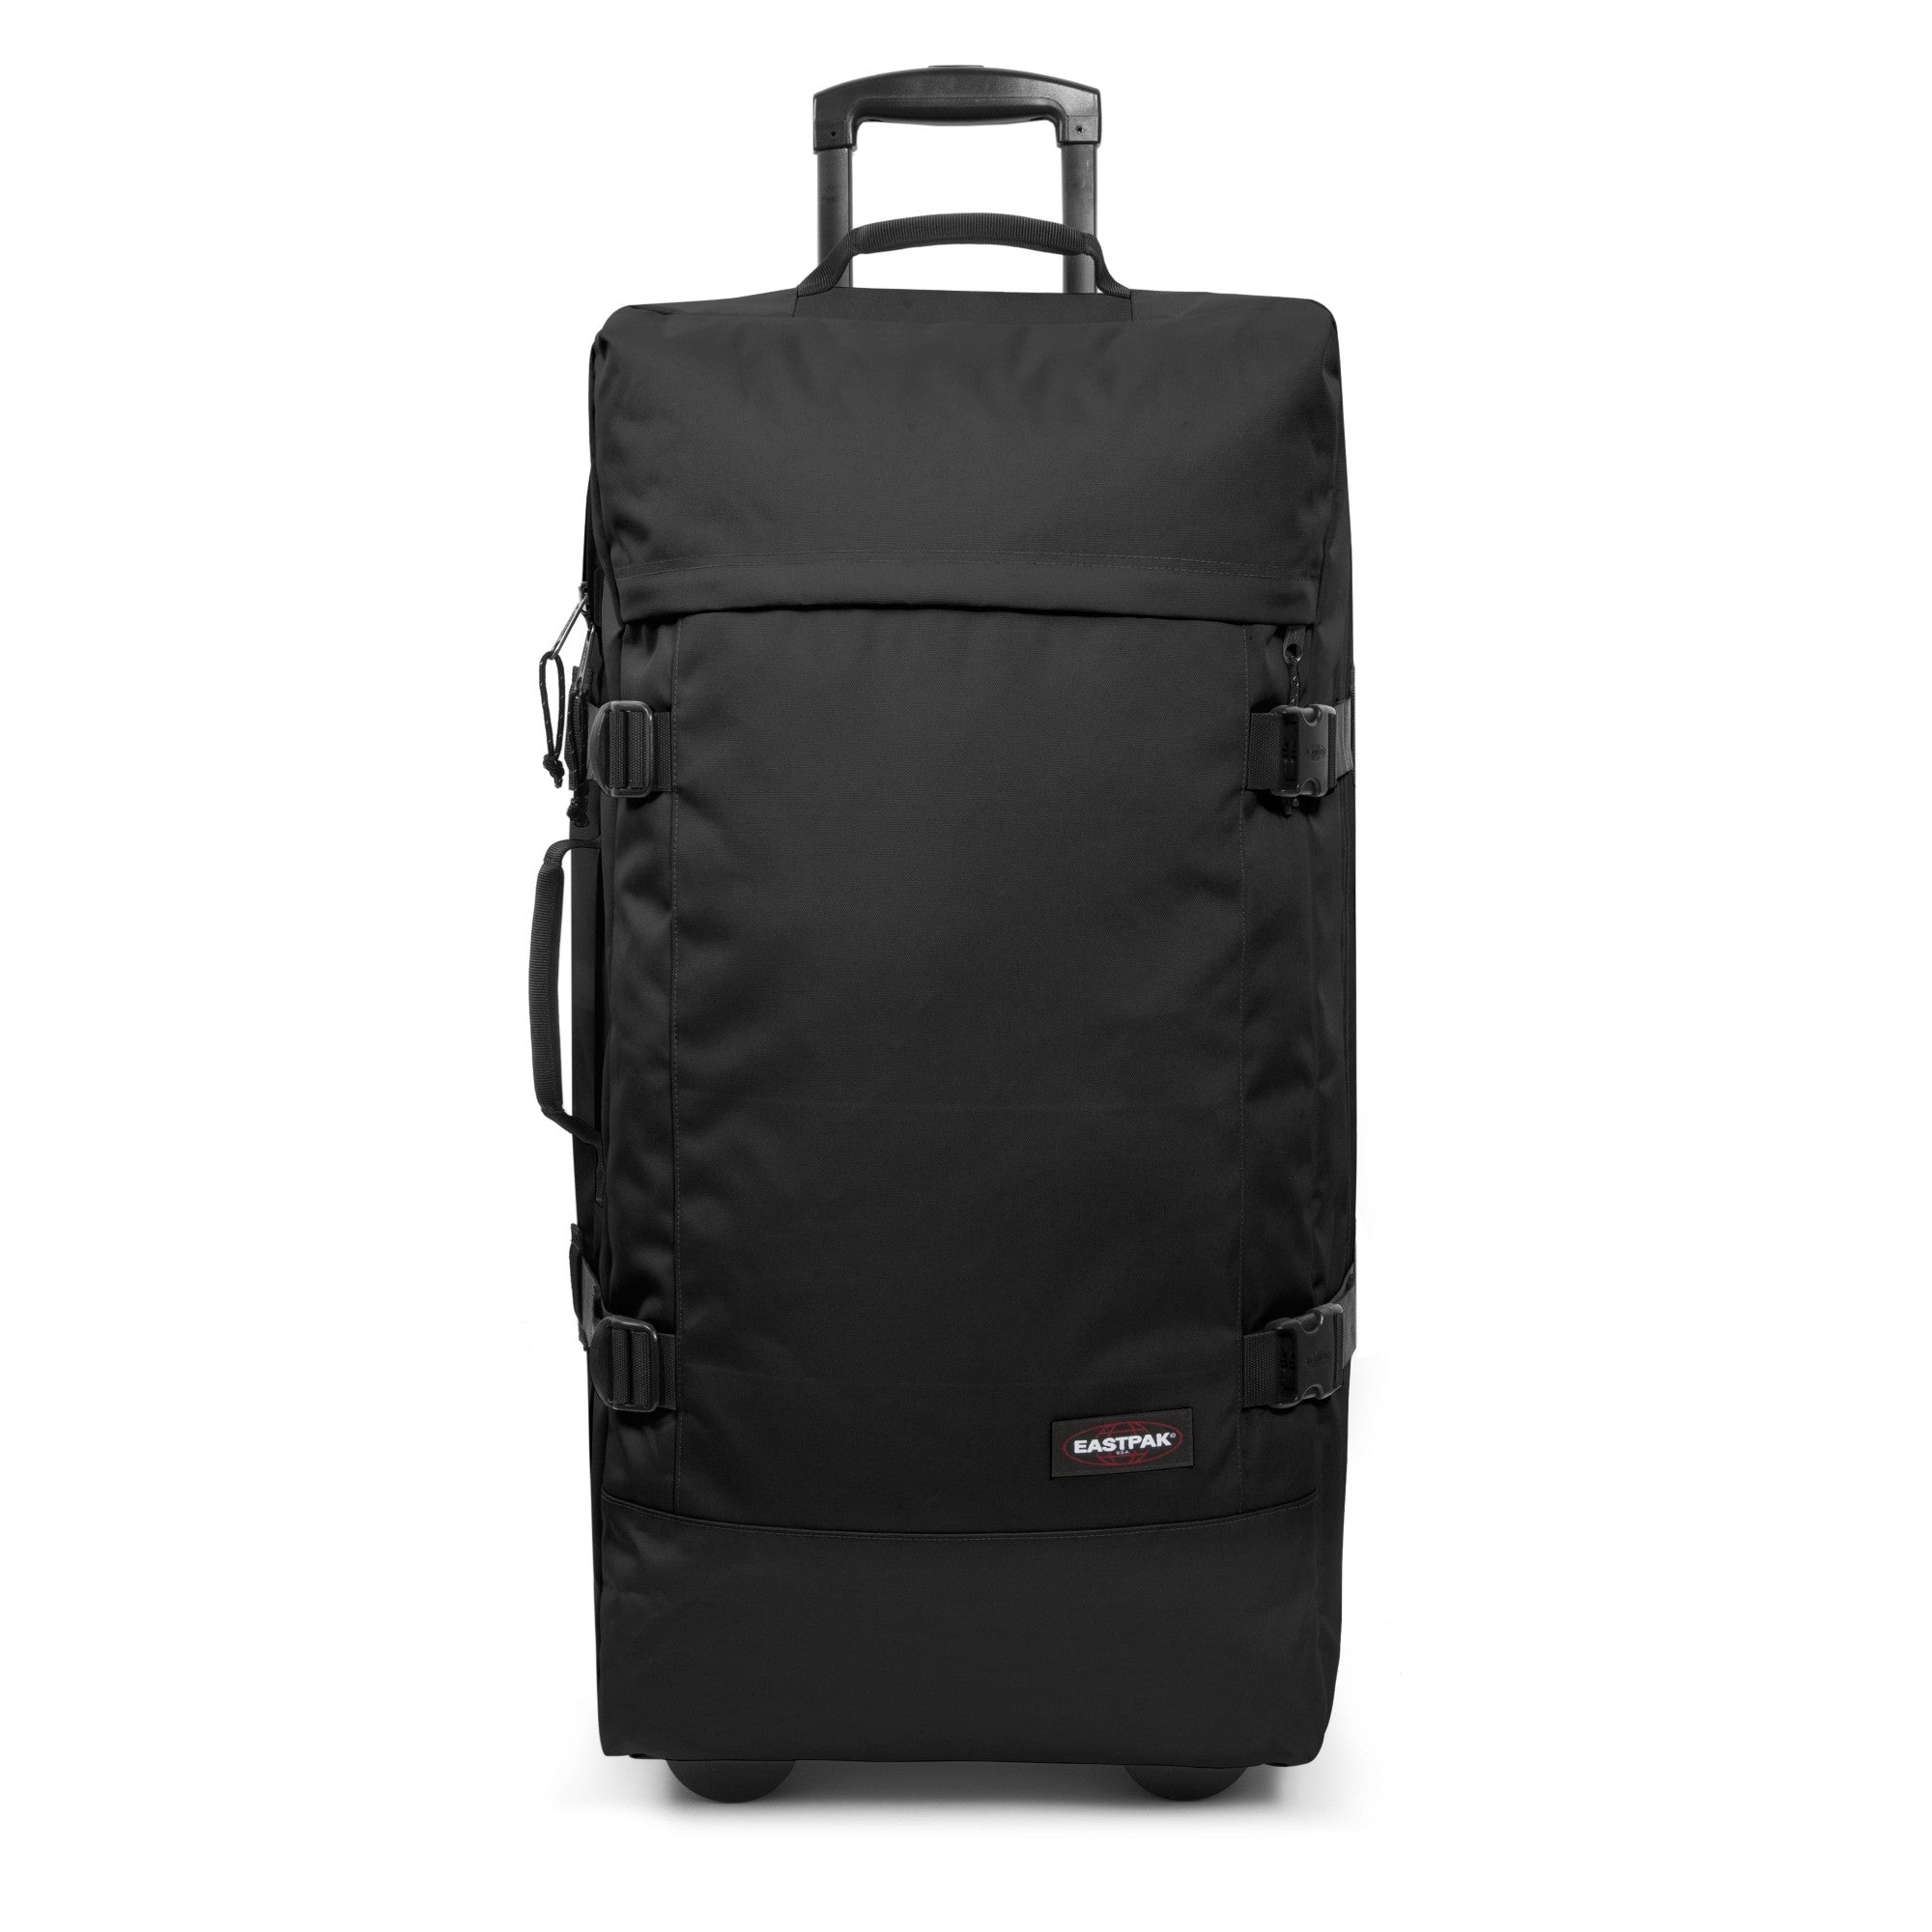 Eastpak Tranverz Constructed L 79cm 2-Wheel Soft-Sided Holdall